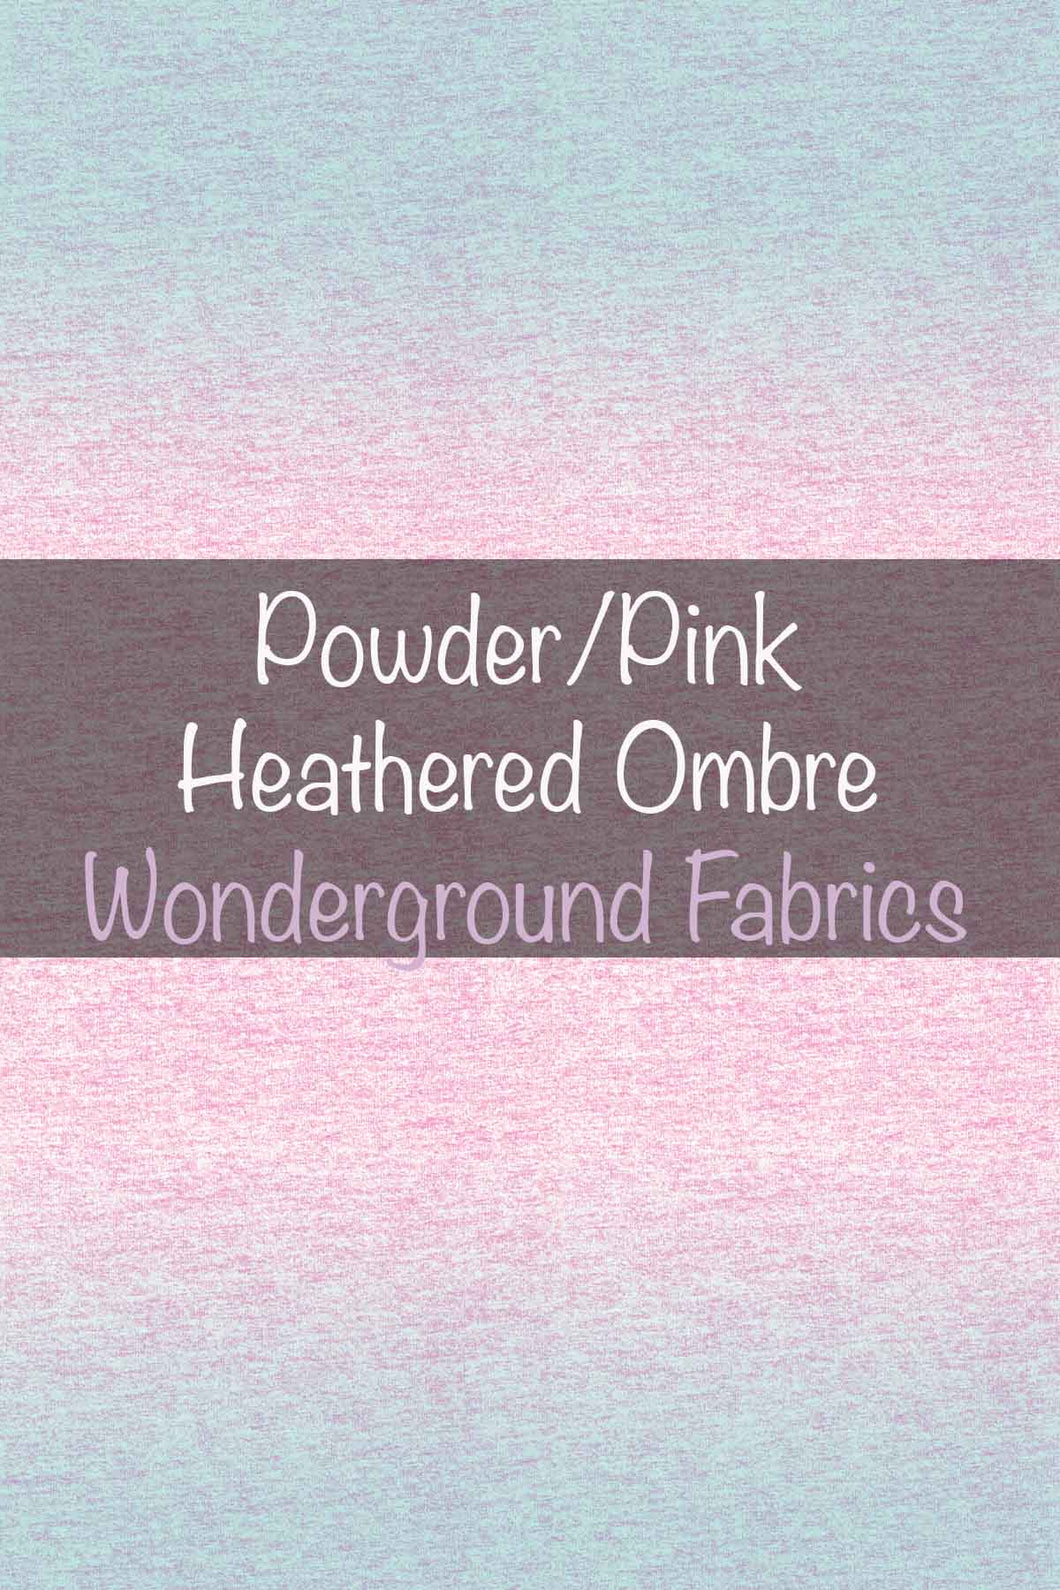 Powder/Pink Heathered Ombre